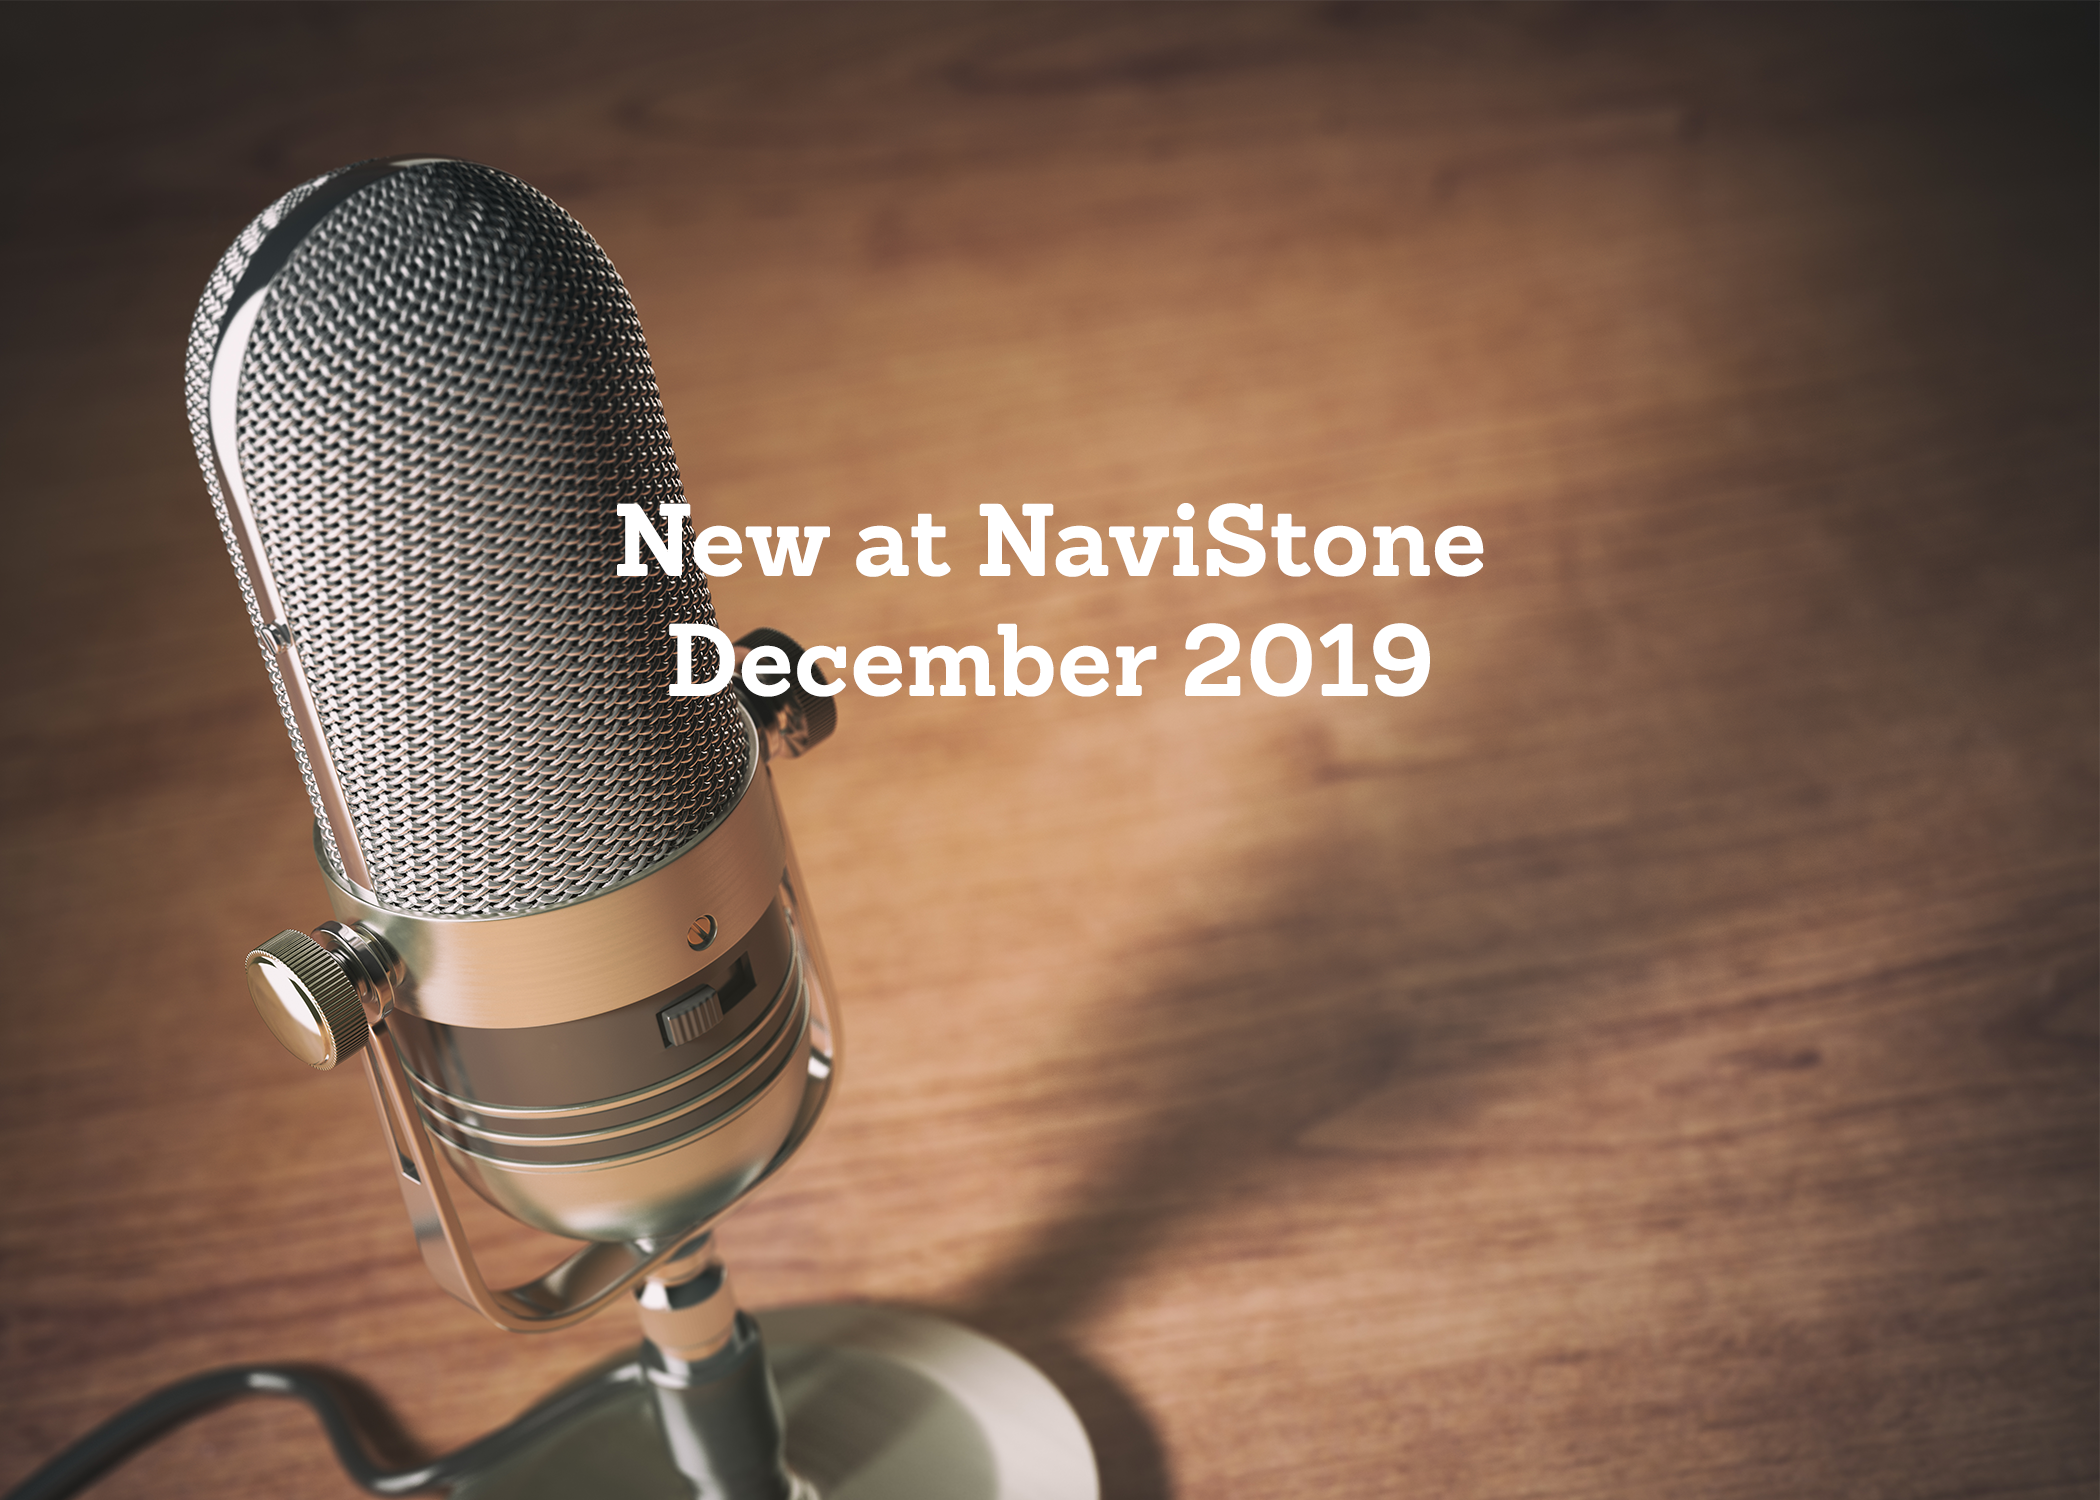 New at NaviStone December 2019